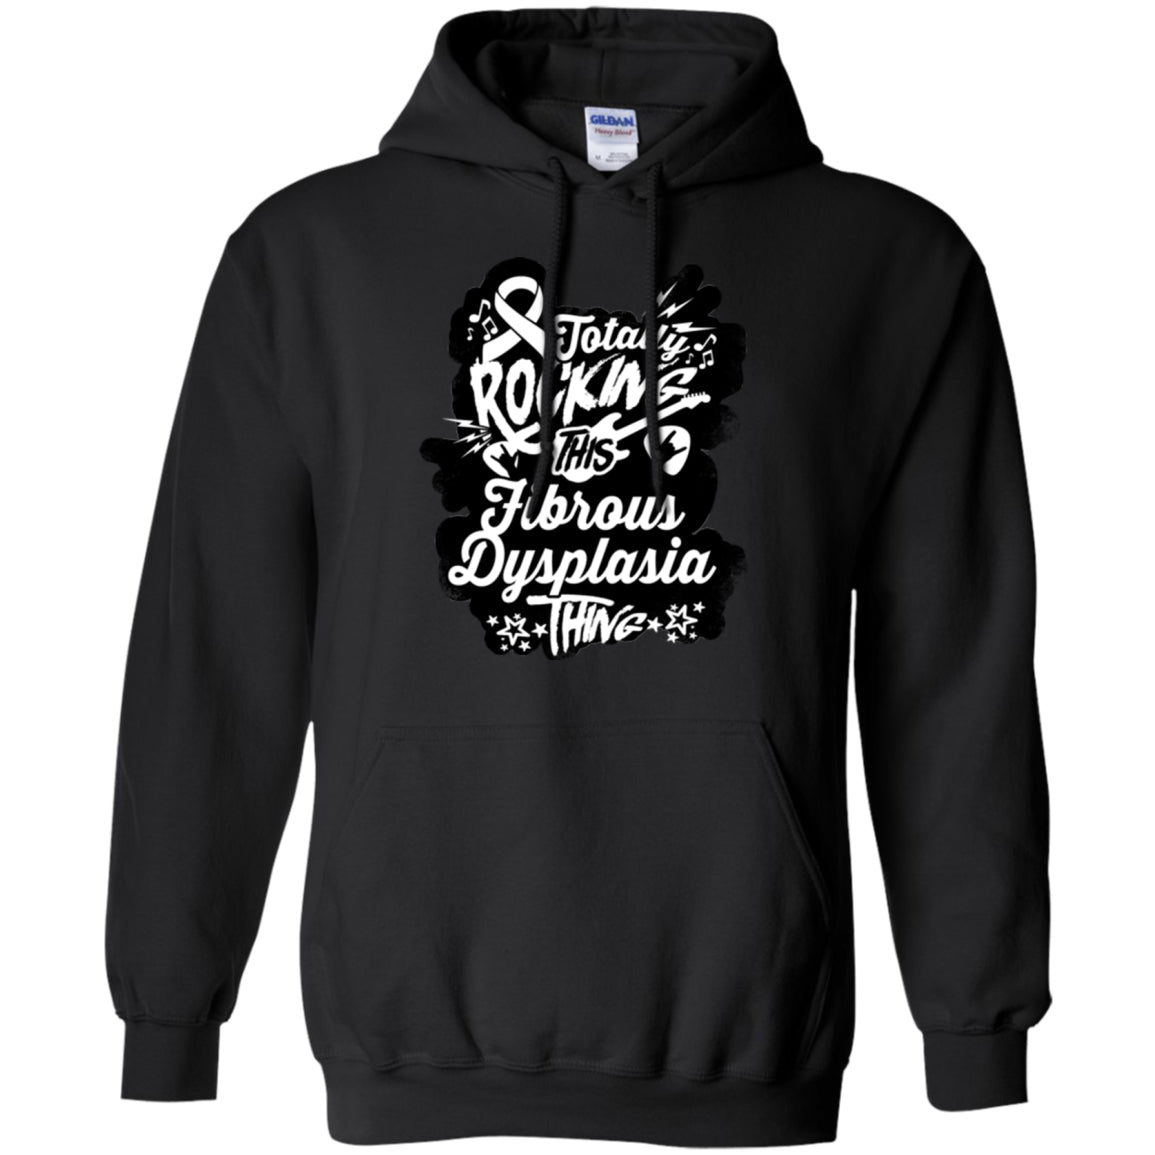 Rocking Fibrous Dysplasia Pullover Hoodie 8 oz. - The Unchargeables